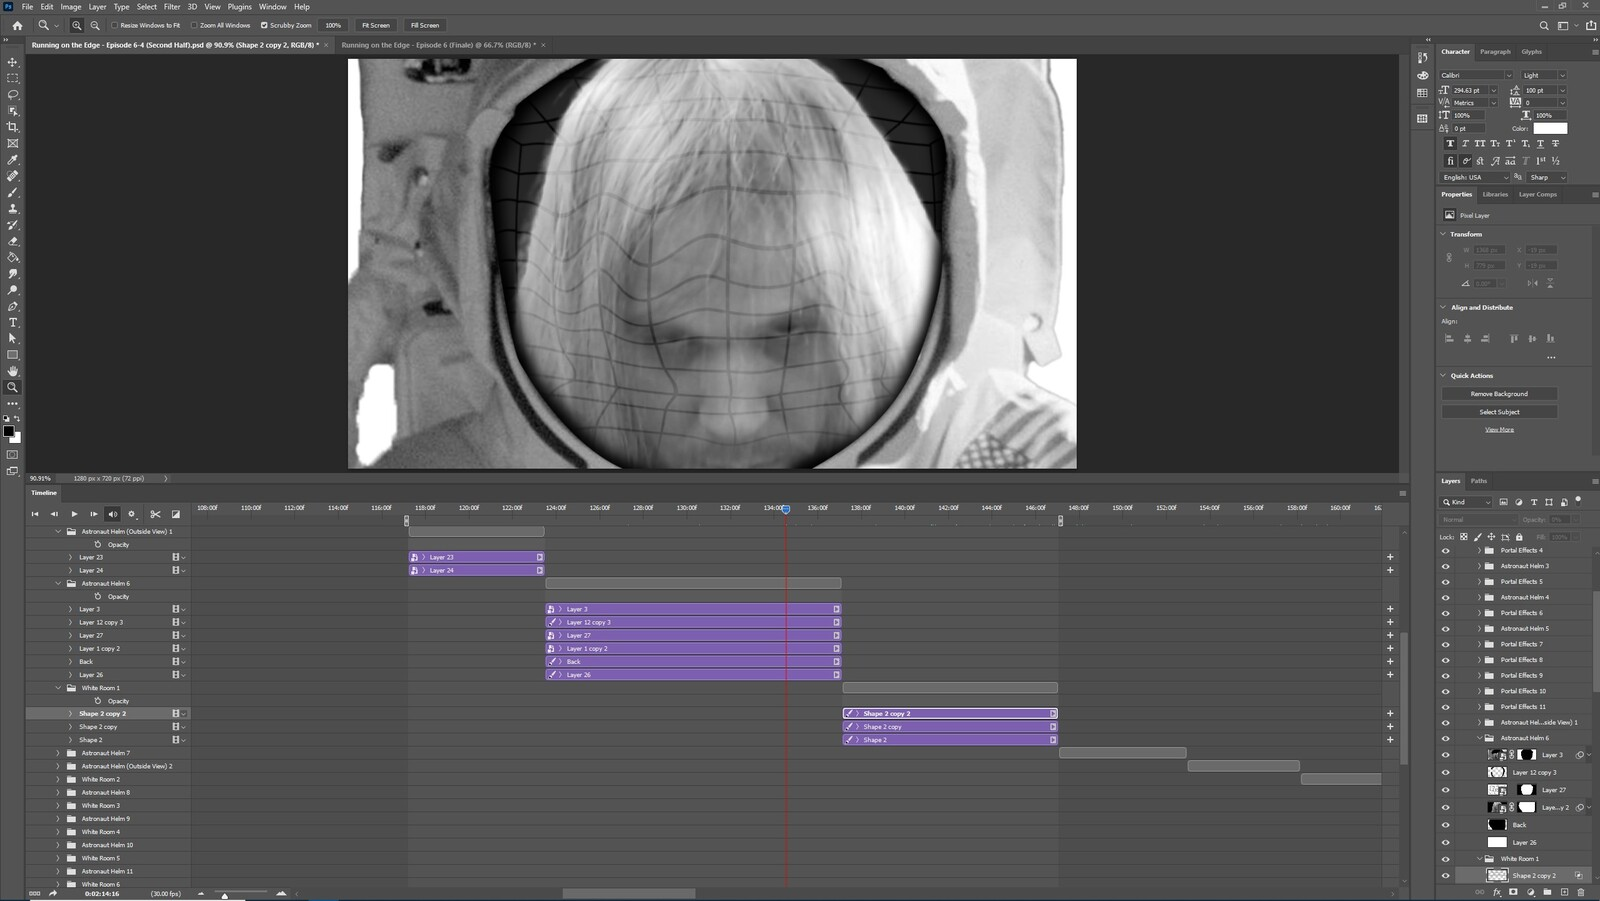 """The """"2020: A Time Oddity, Part 6"""" visual effect within Photoshop video editor"""